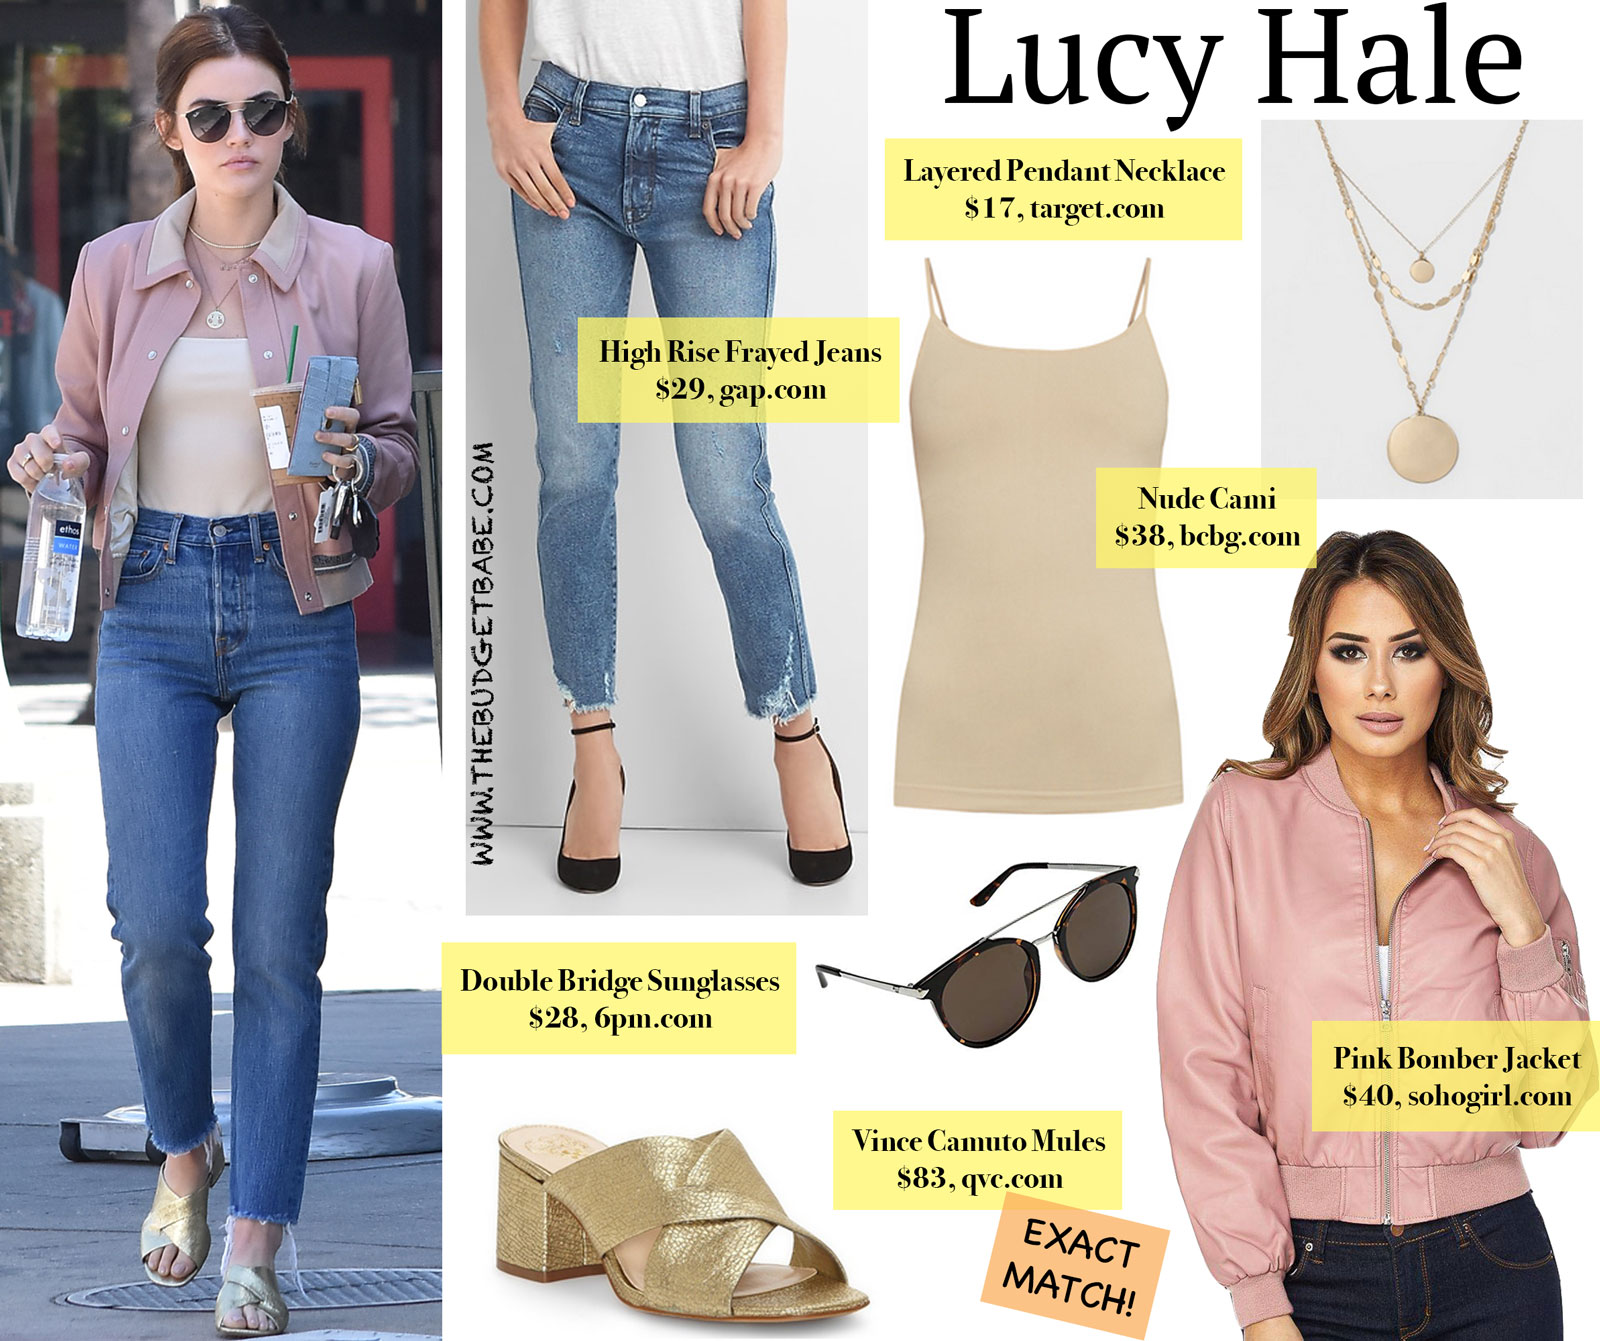 Lucy Hale Pink Bomber Jacket and Ray-Ban Look for Less